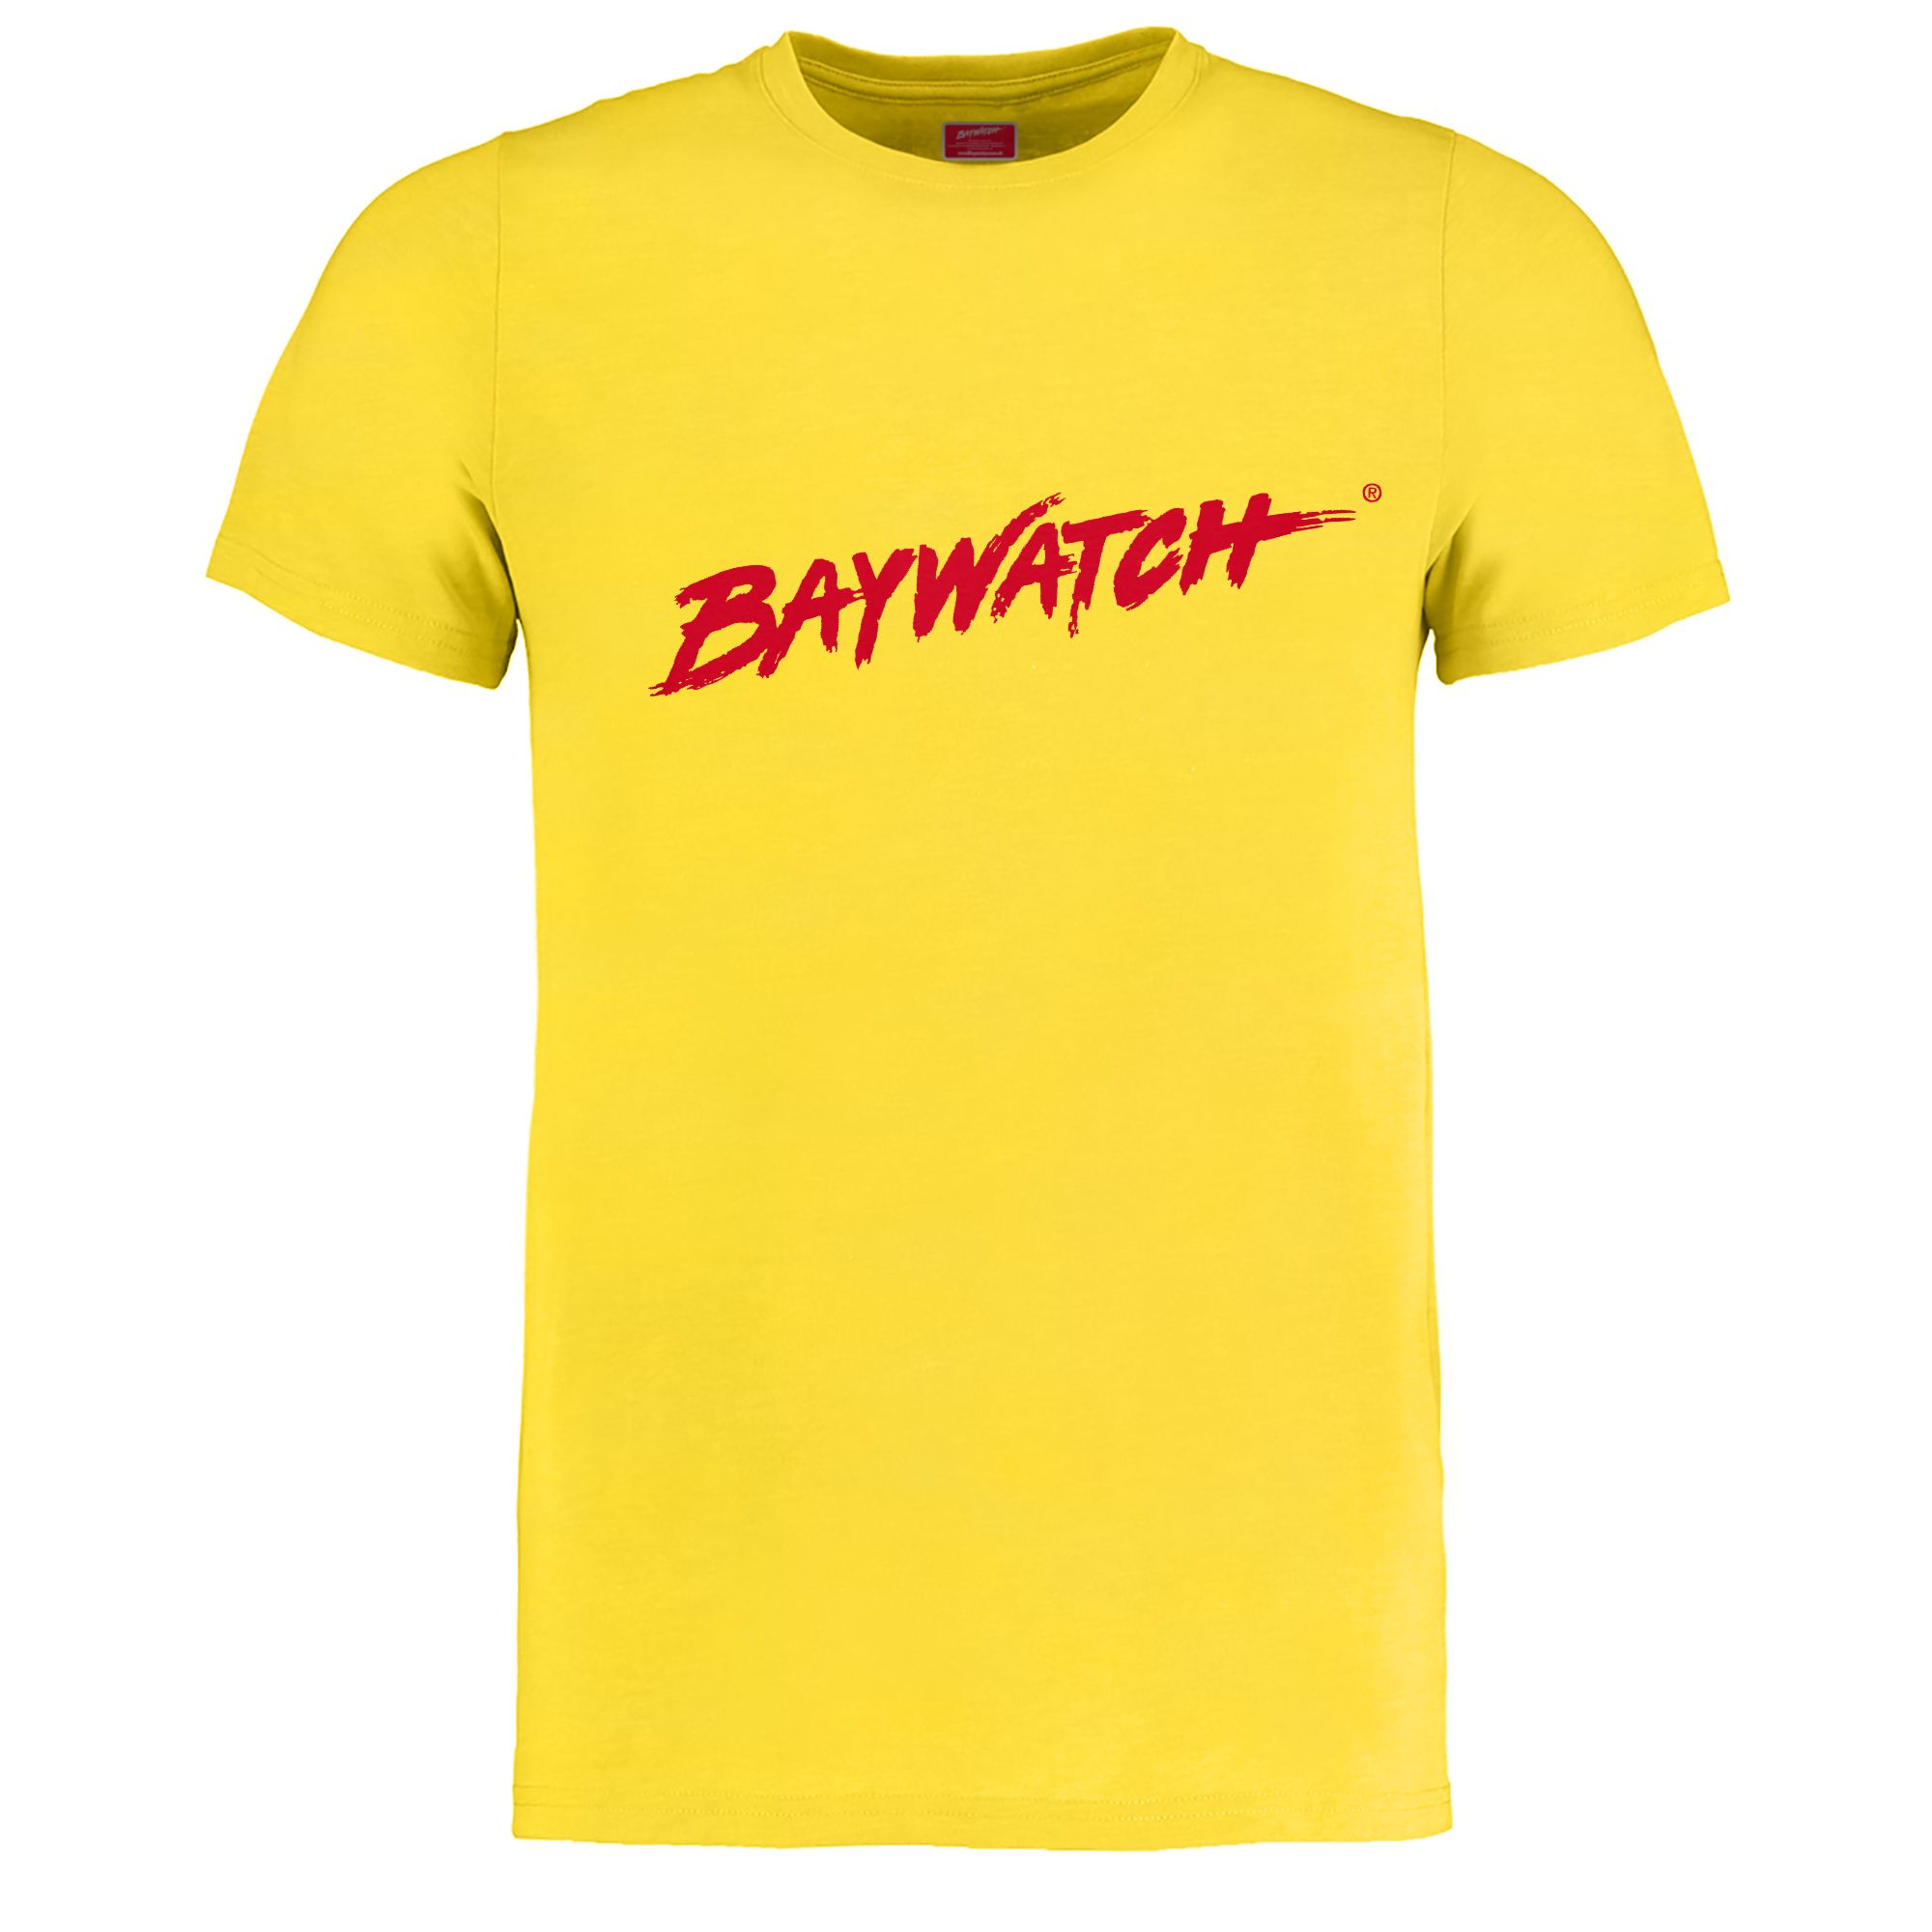 Licensed baywatch yellow t shirt lifeguard gear for Small quantity custom t shirts